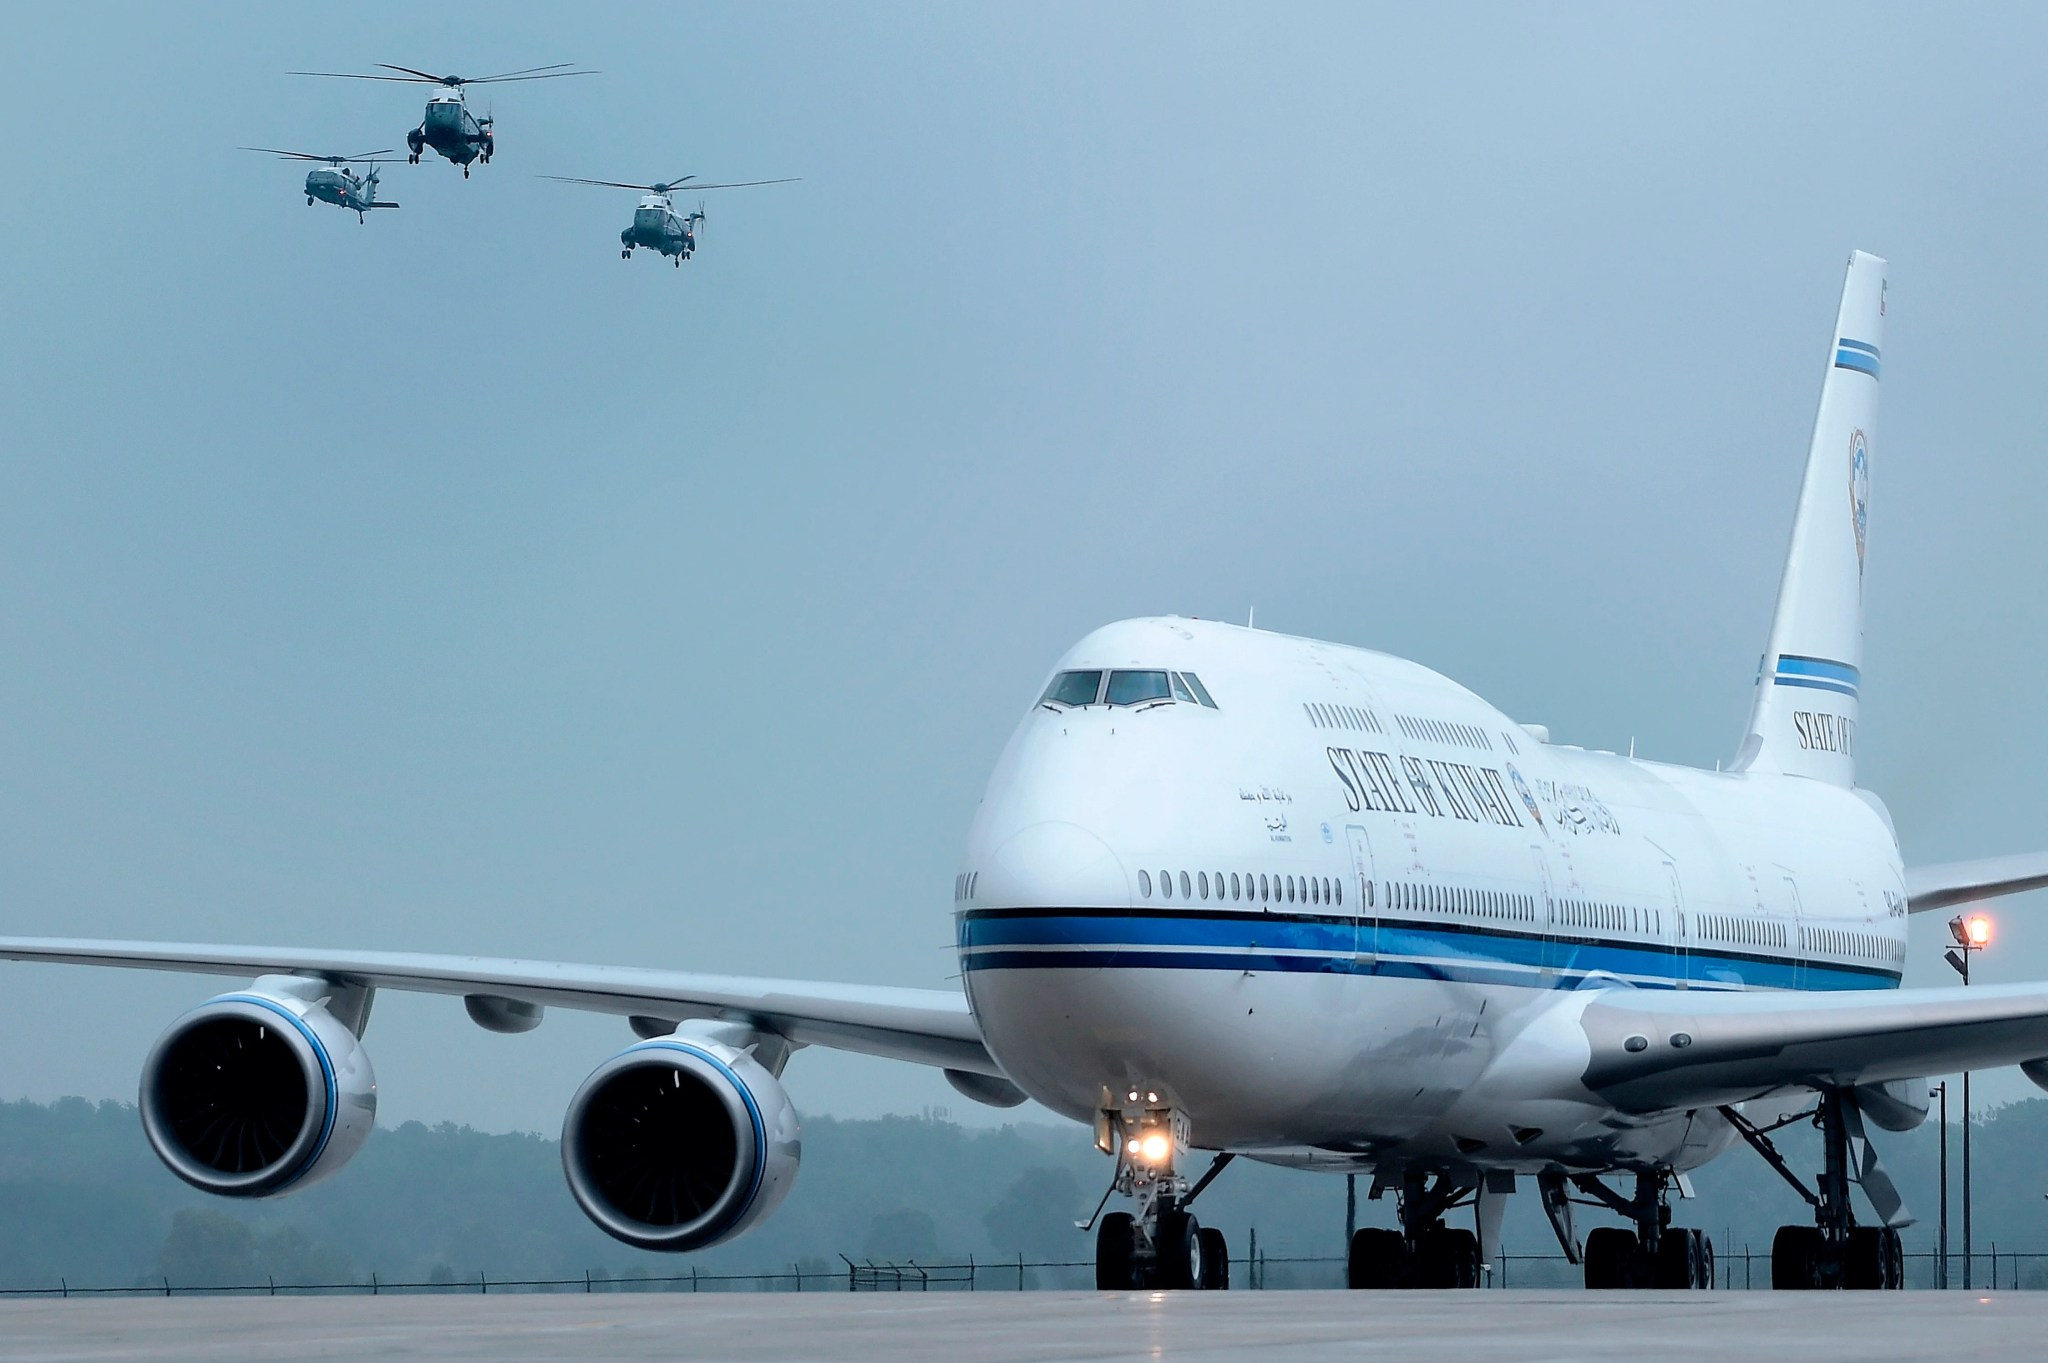 Who S Got The Biggest Plane The Vip Jets Of World Leaders